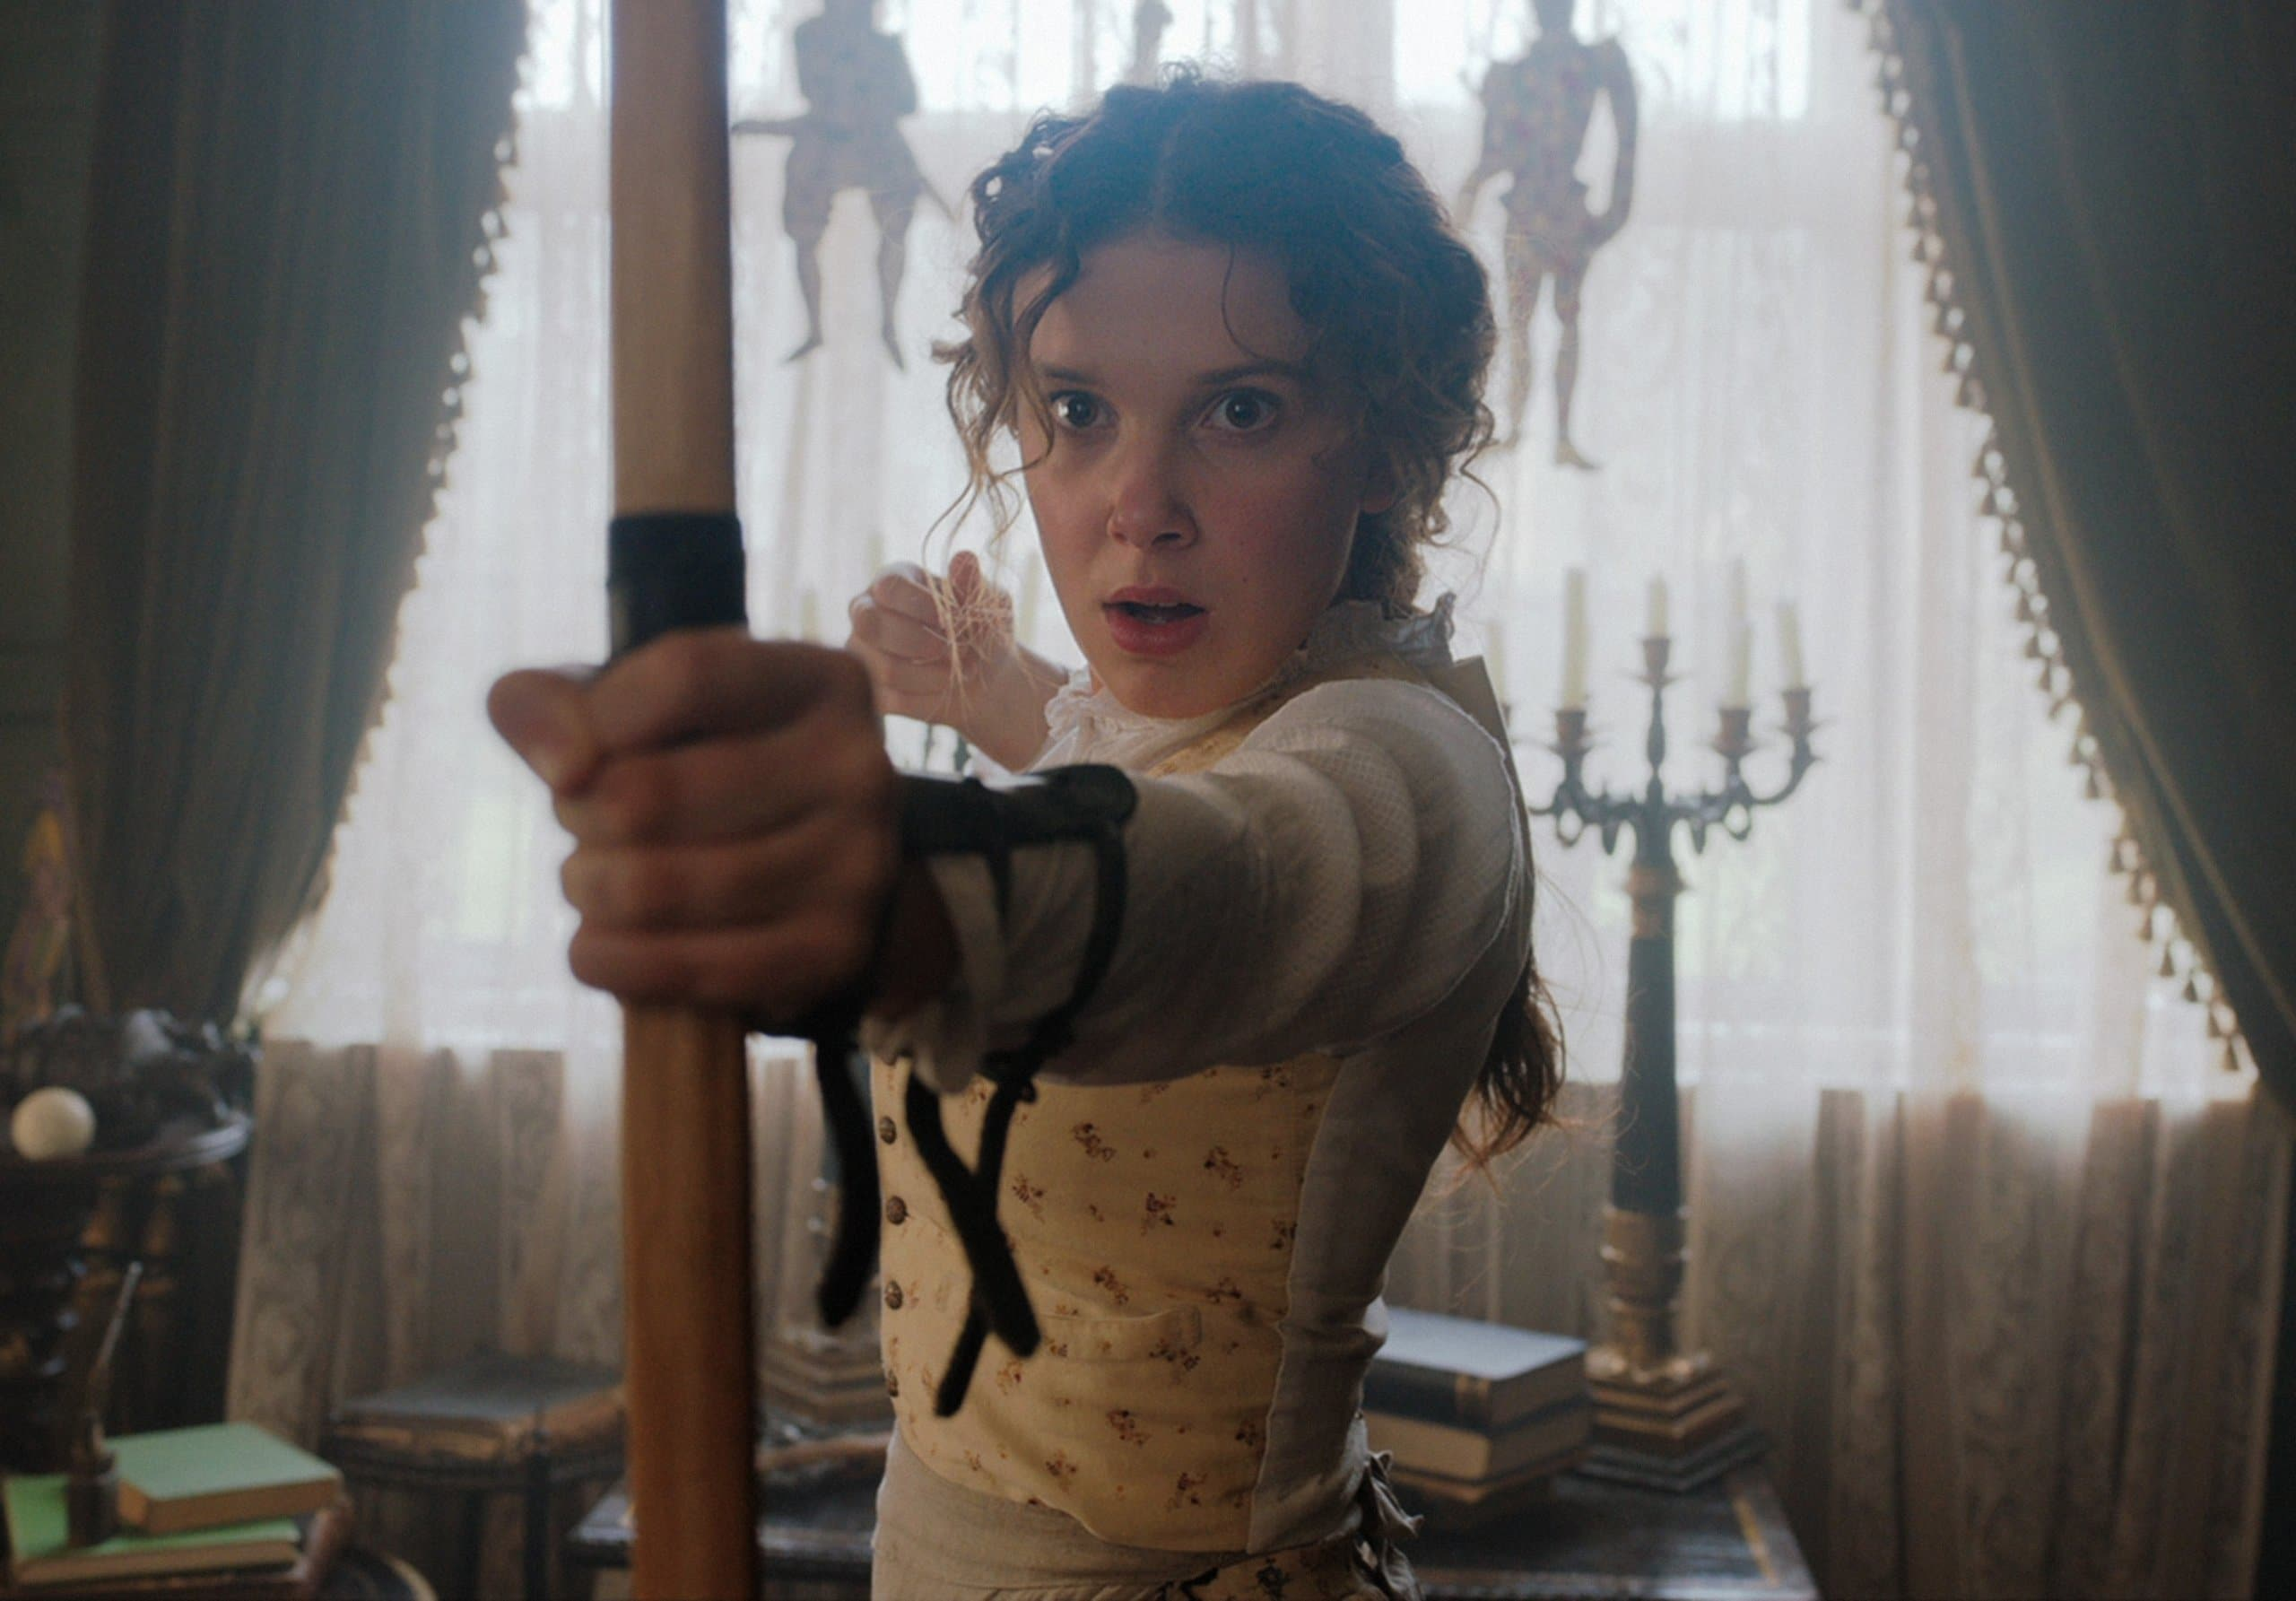 Netflix films with strong female leads: Enola Holmes